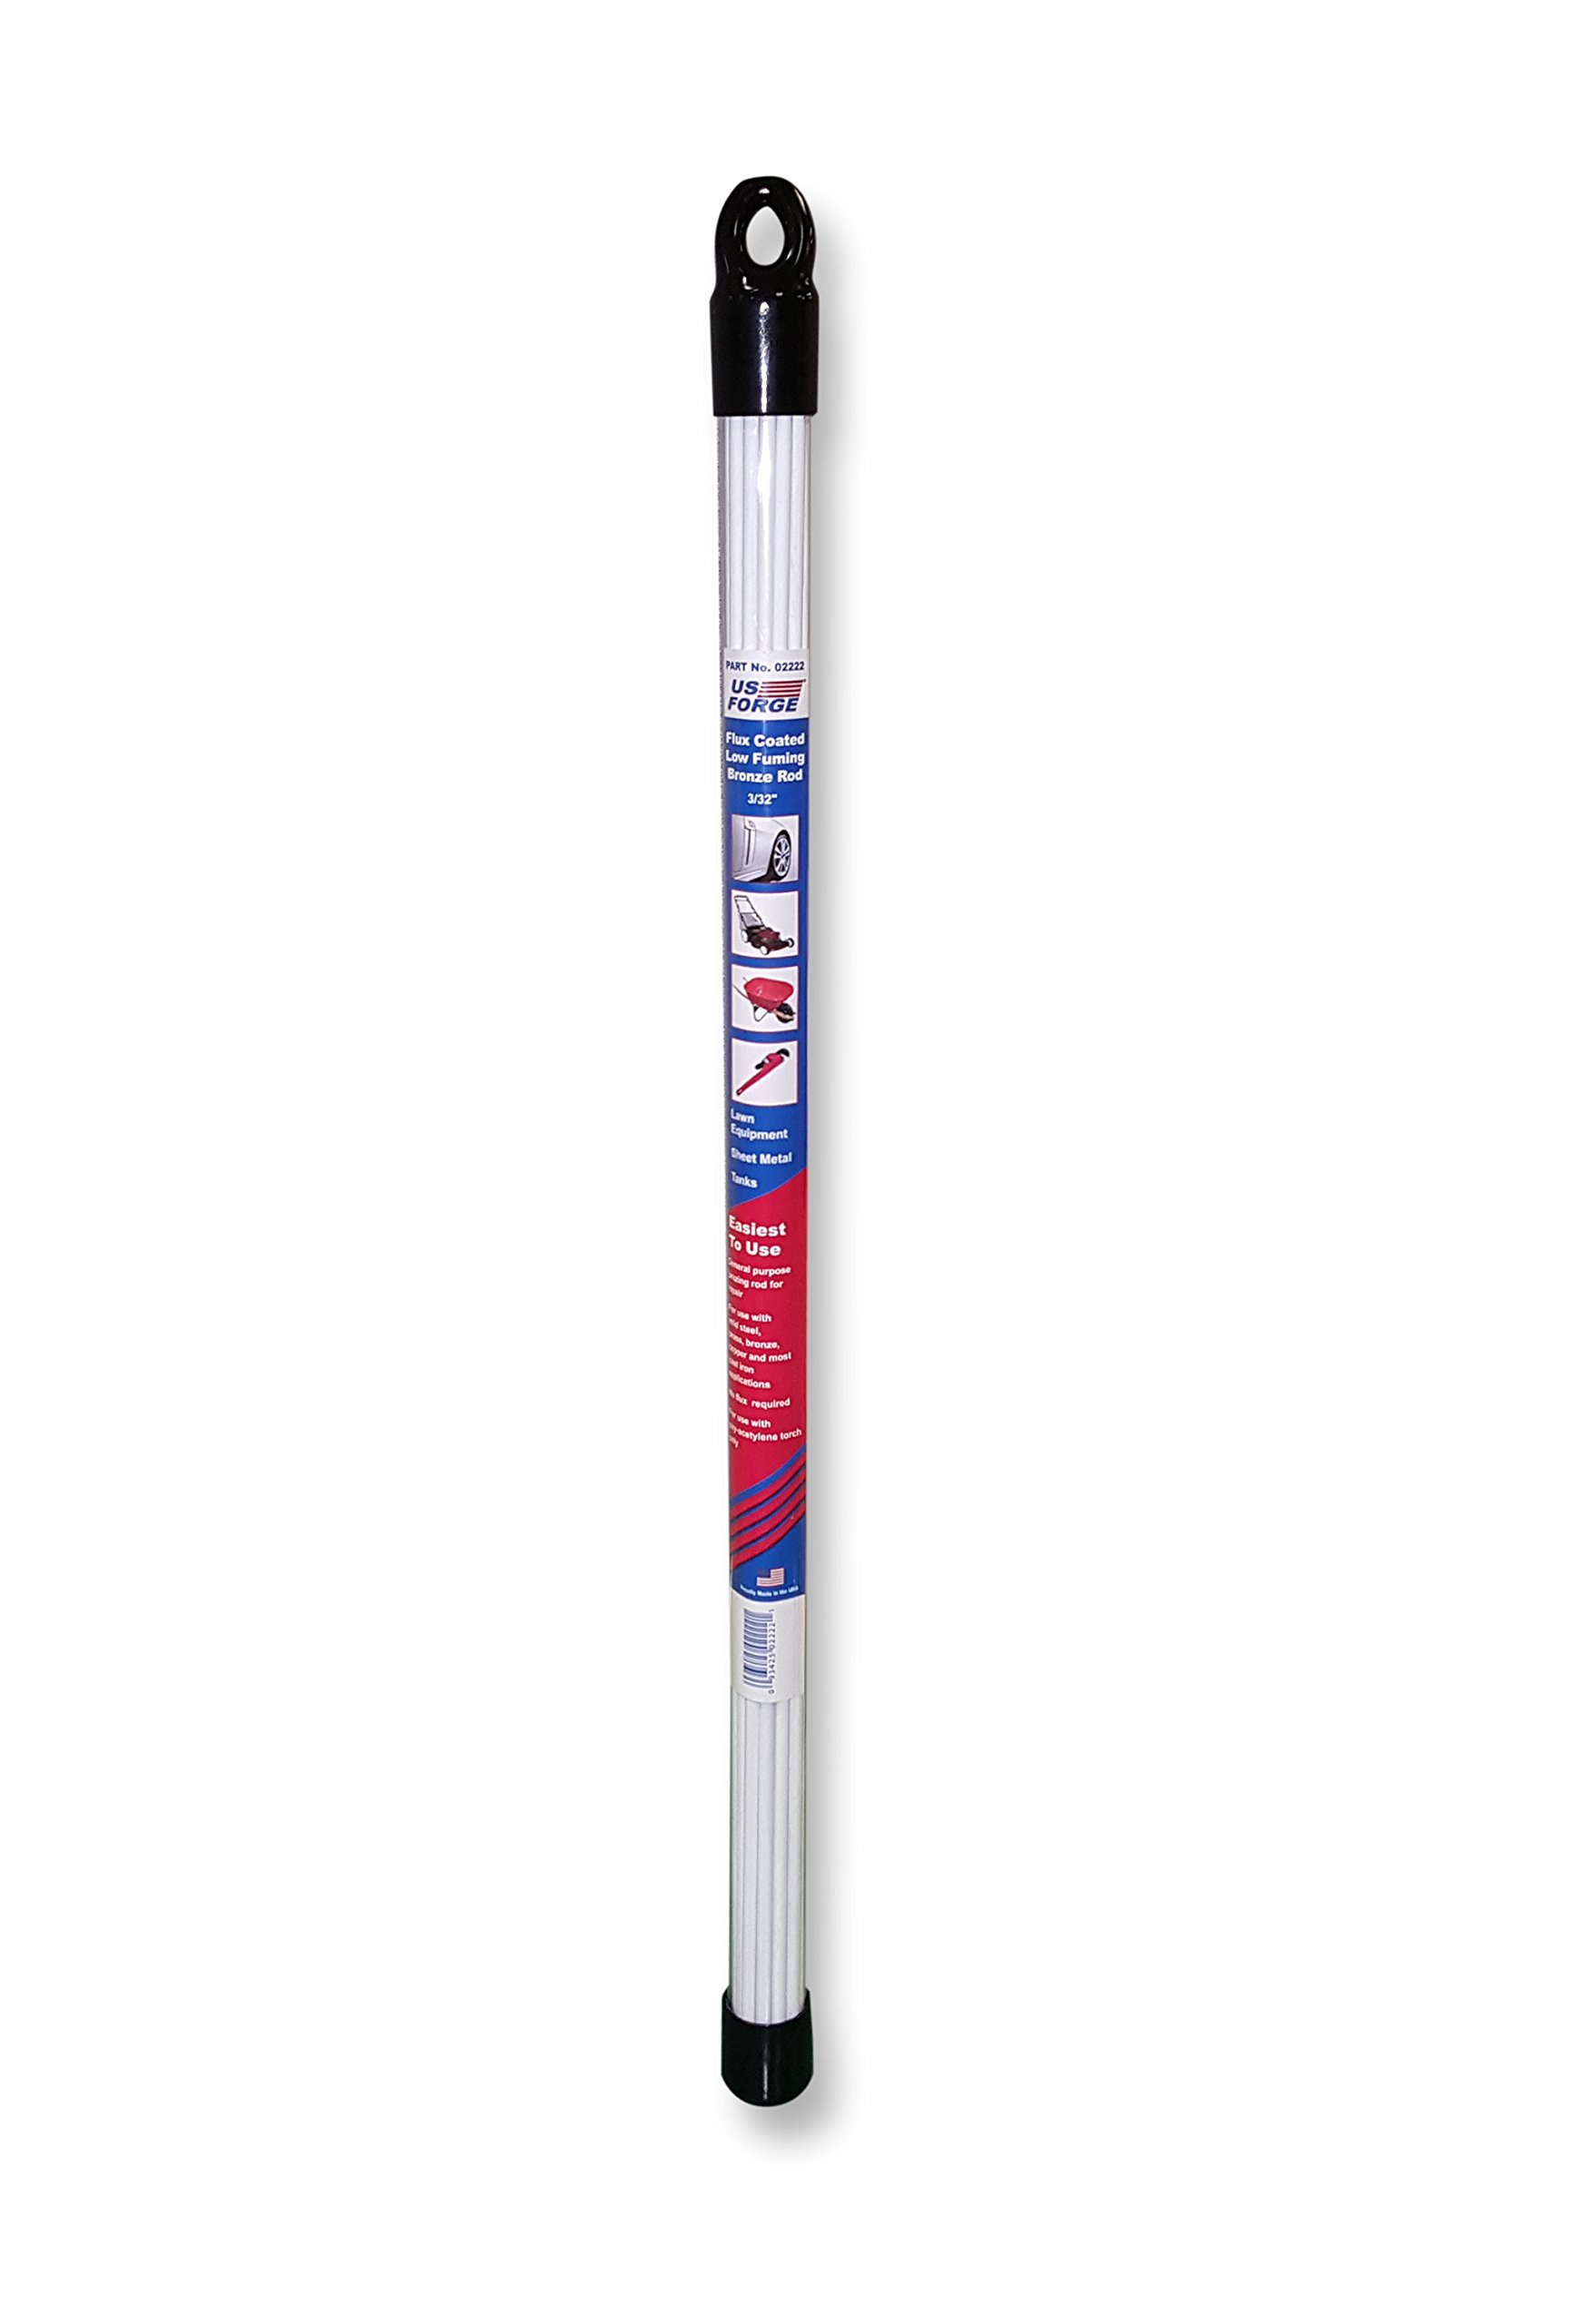 US Forge 2222 Flux Coated Low Fuming Bronze Rod 3/32'''' by 18'''' 0.8 Lb Tube